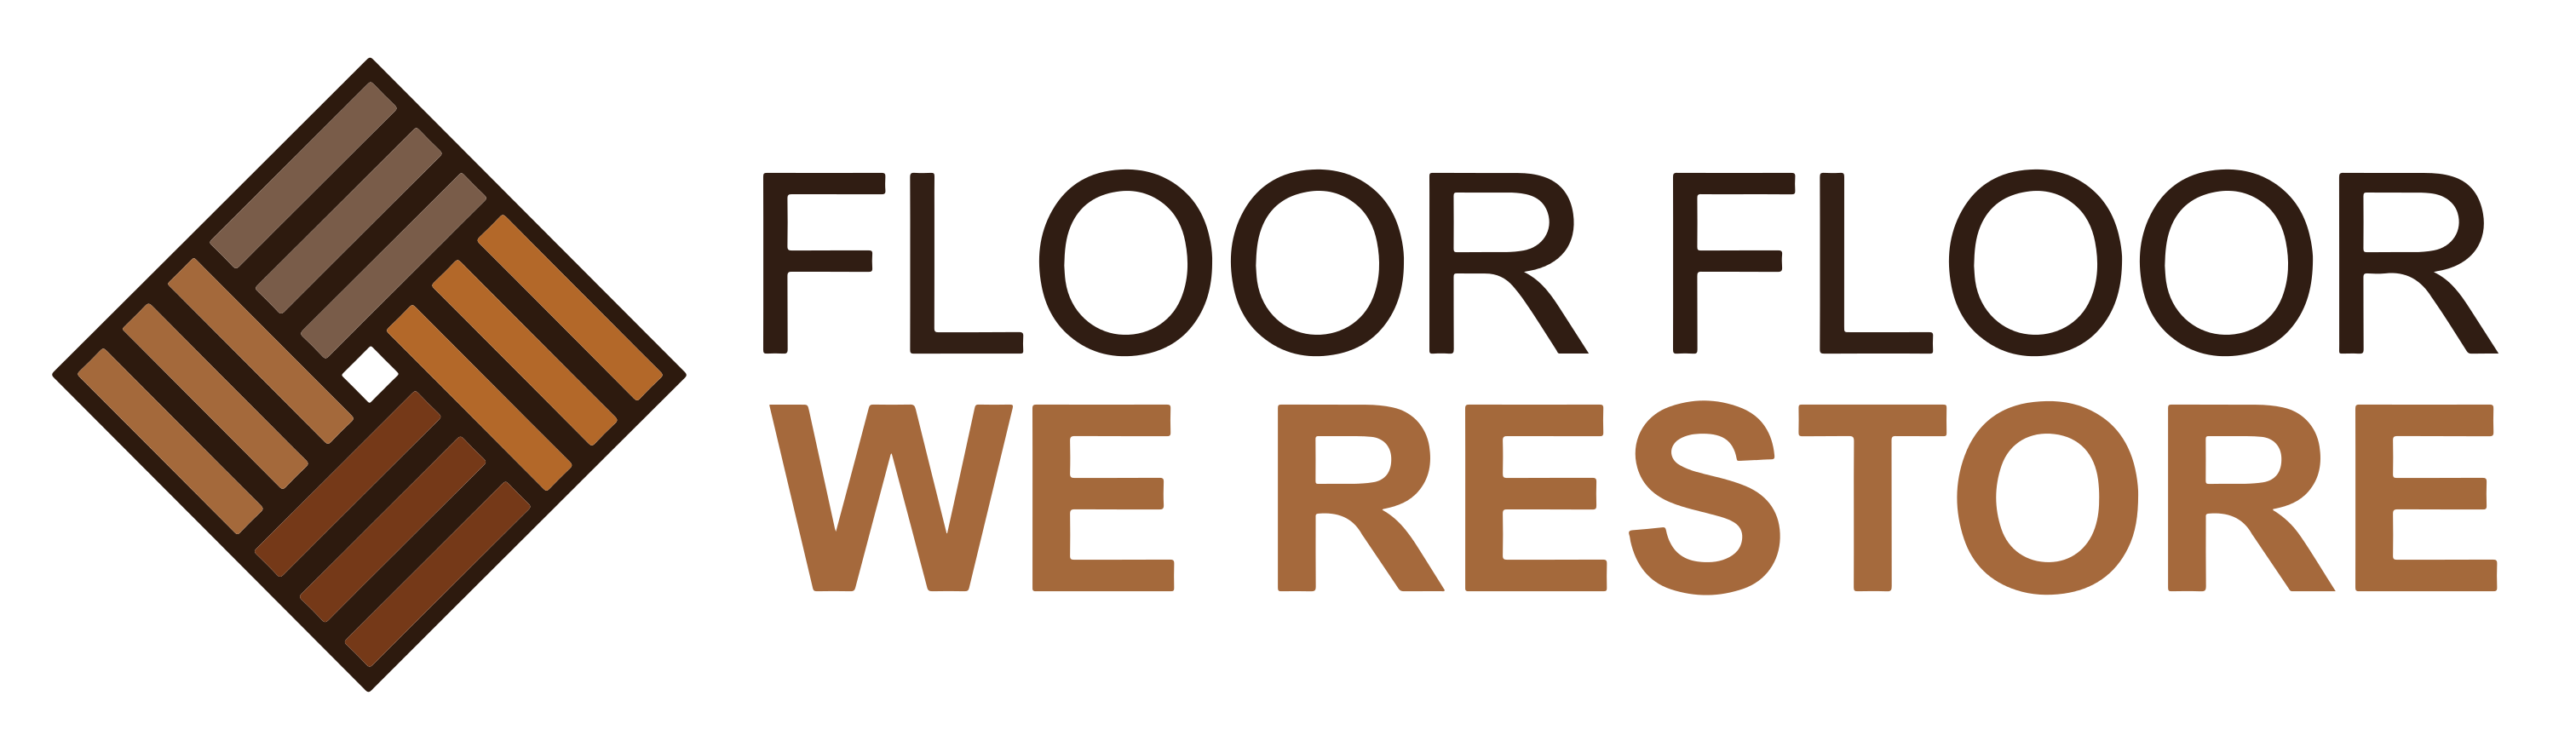 FloorFloorWeRestore